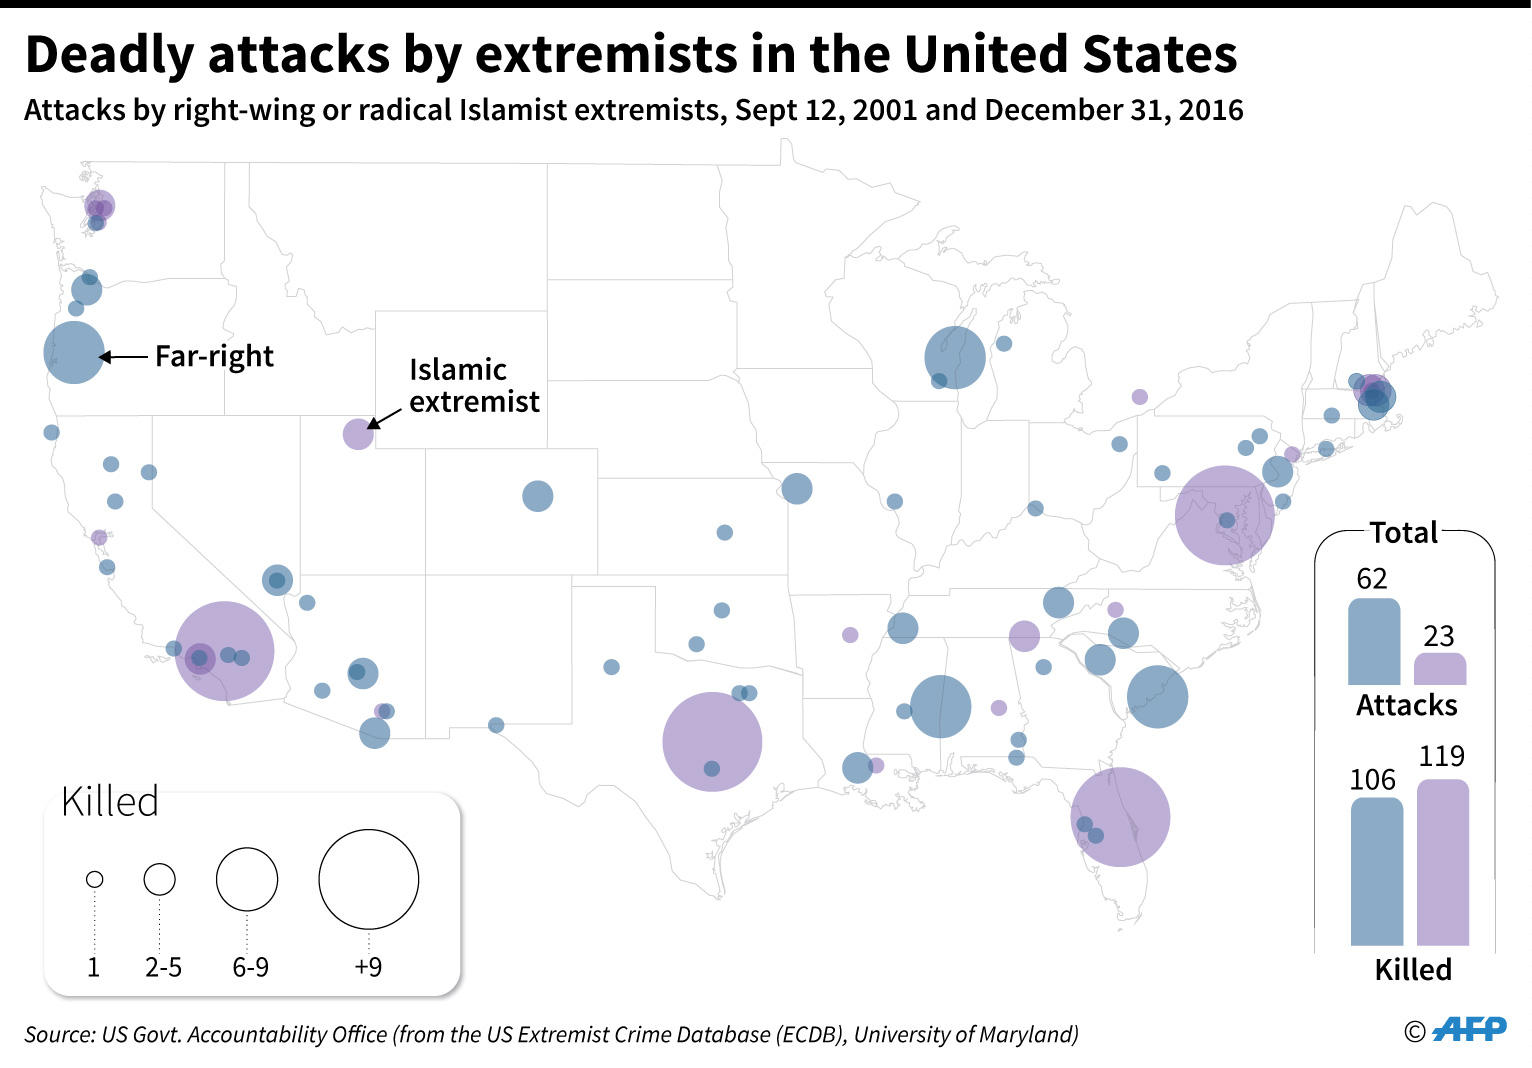 Map of the United States locating violence by right-wing nationalists and Islamic extremists between September 12, 2001 and December 31 2016. From a Government Accountability Office report